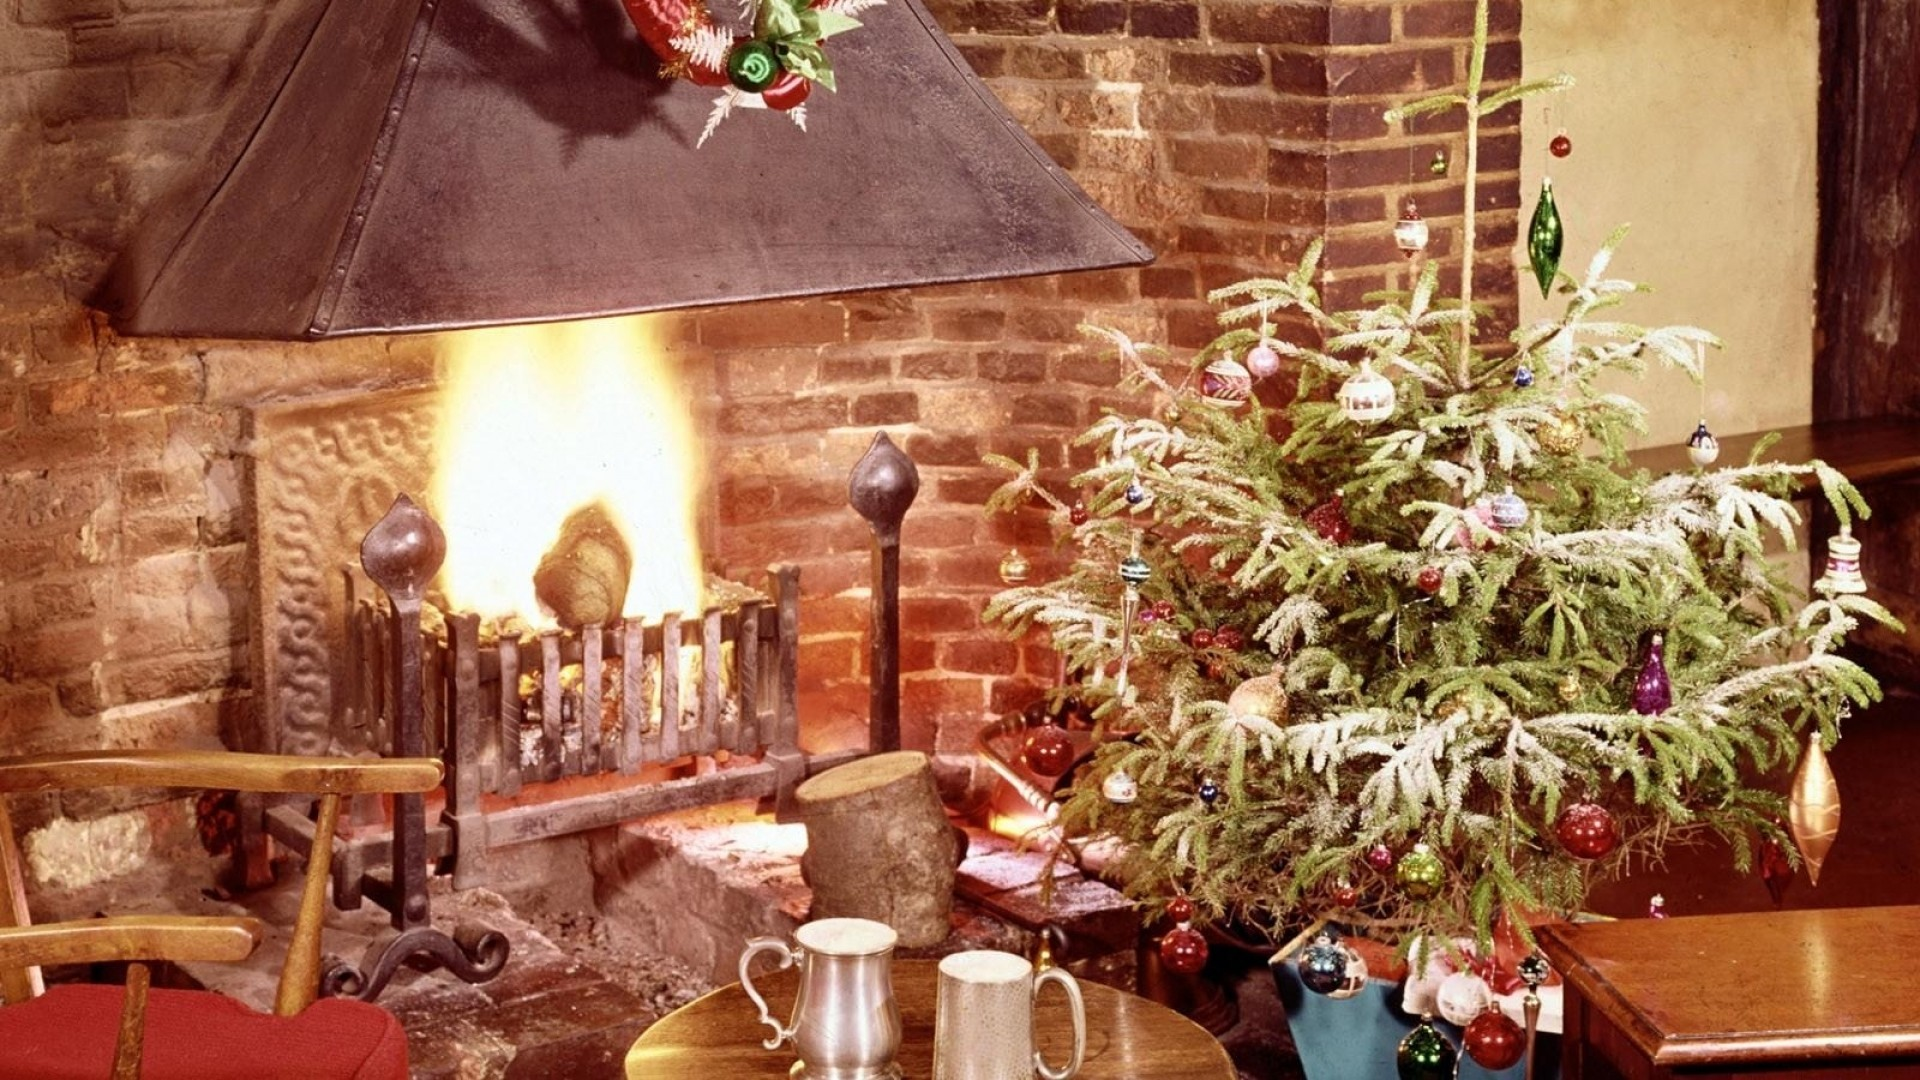 1920x1080 ... Background Full HD 1080p.  Wallpaper christmas tree,  fireplace, fire, holiday, christmas